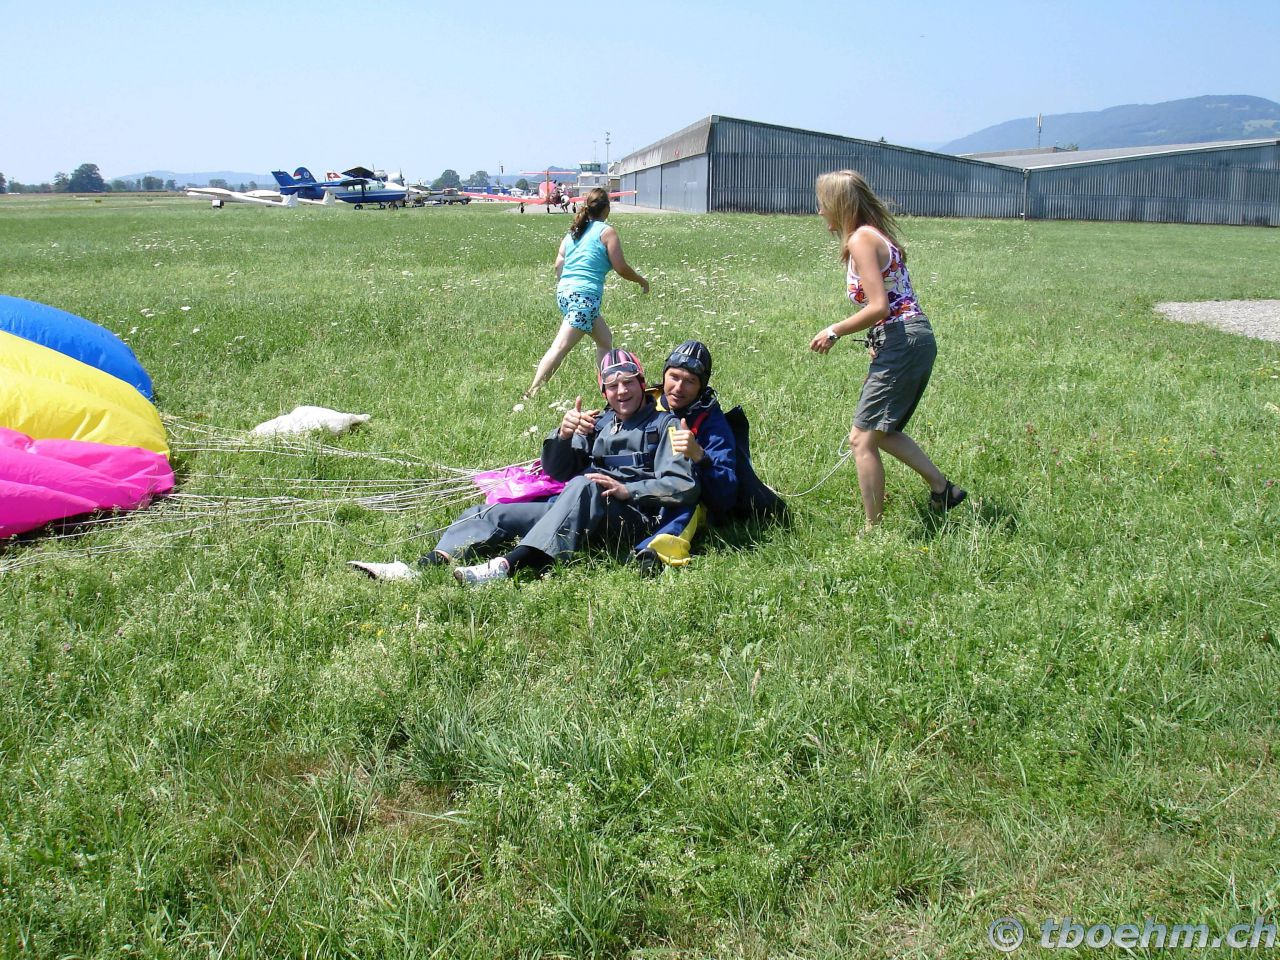 skydive_grenchen_16_07_2006_26_20121125_1239342699